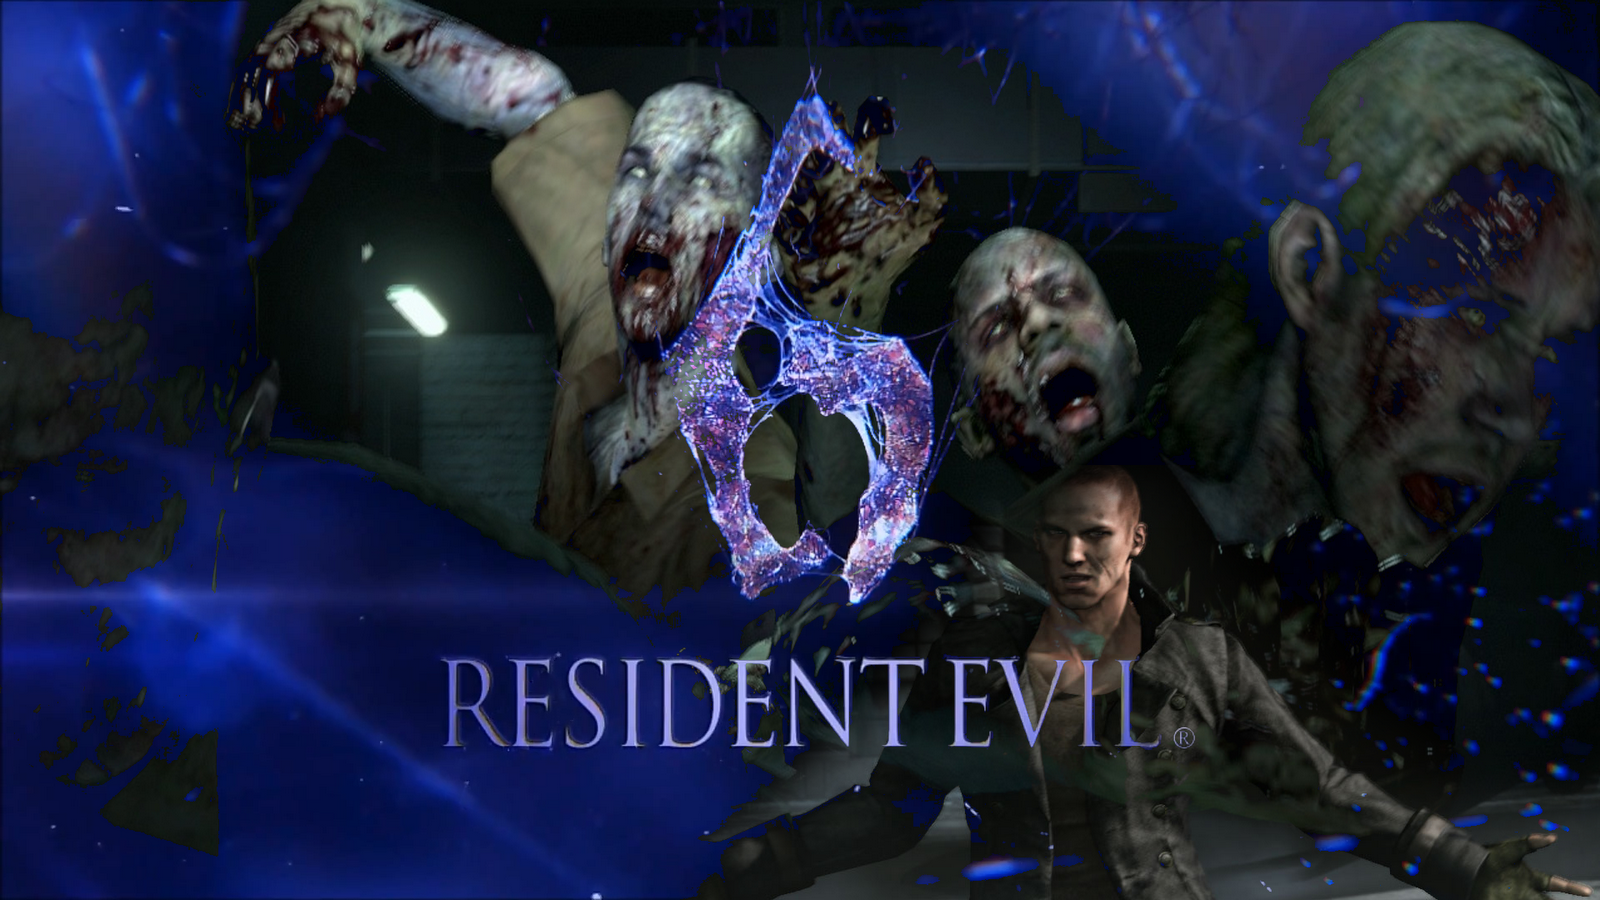 Free Download Resident Evil 6 Wallpapers Hd Hd Wallpapers